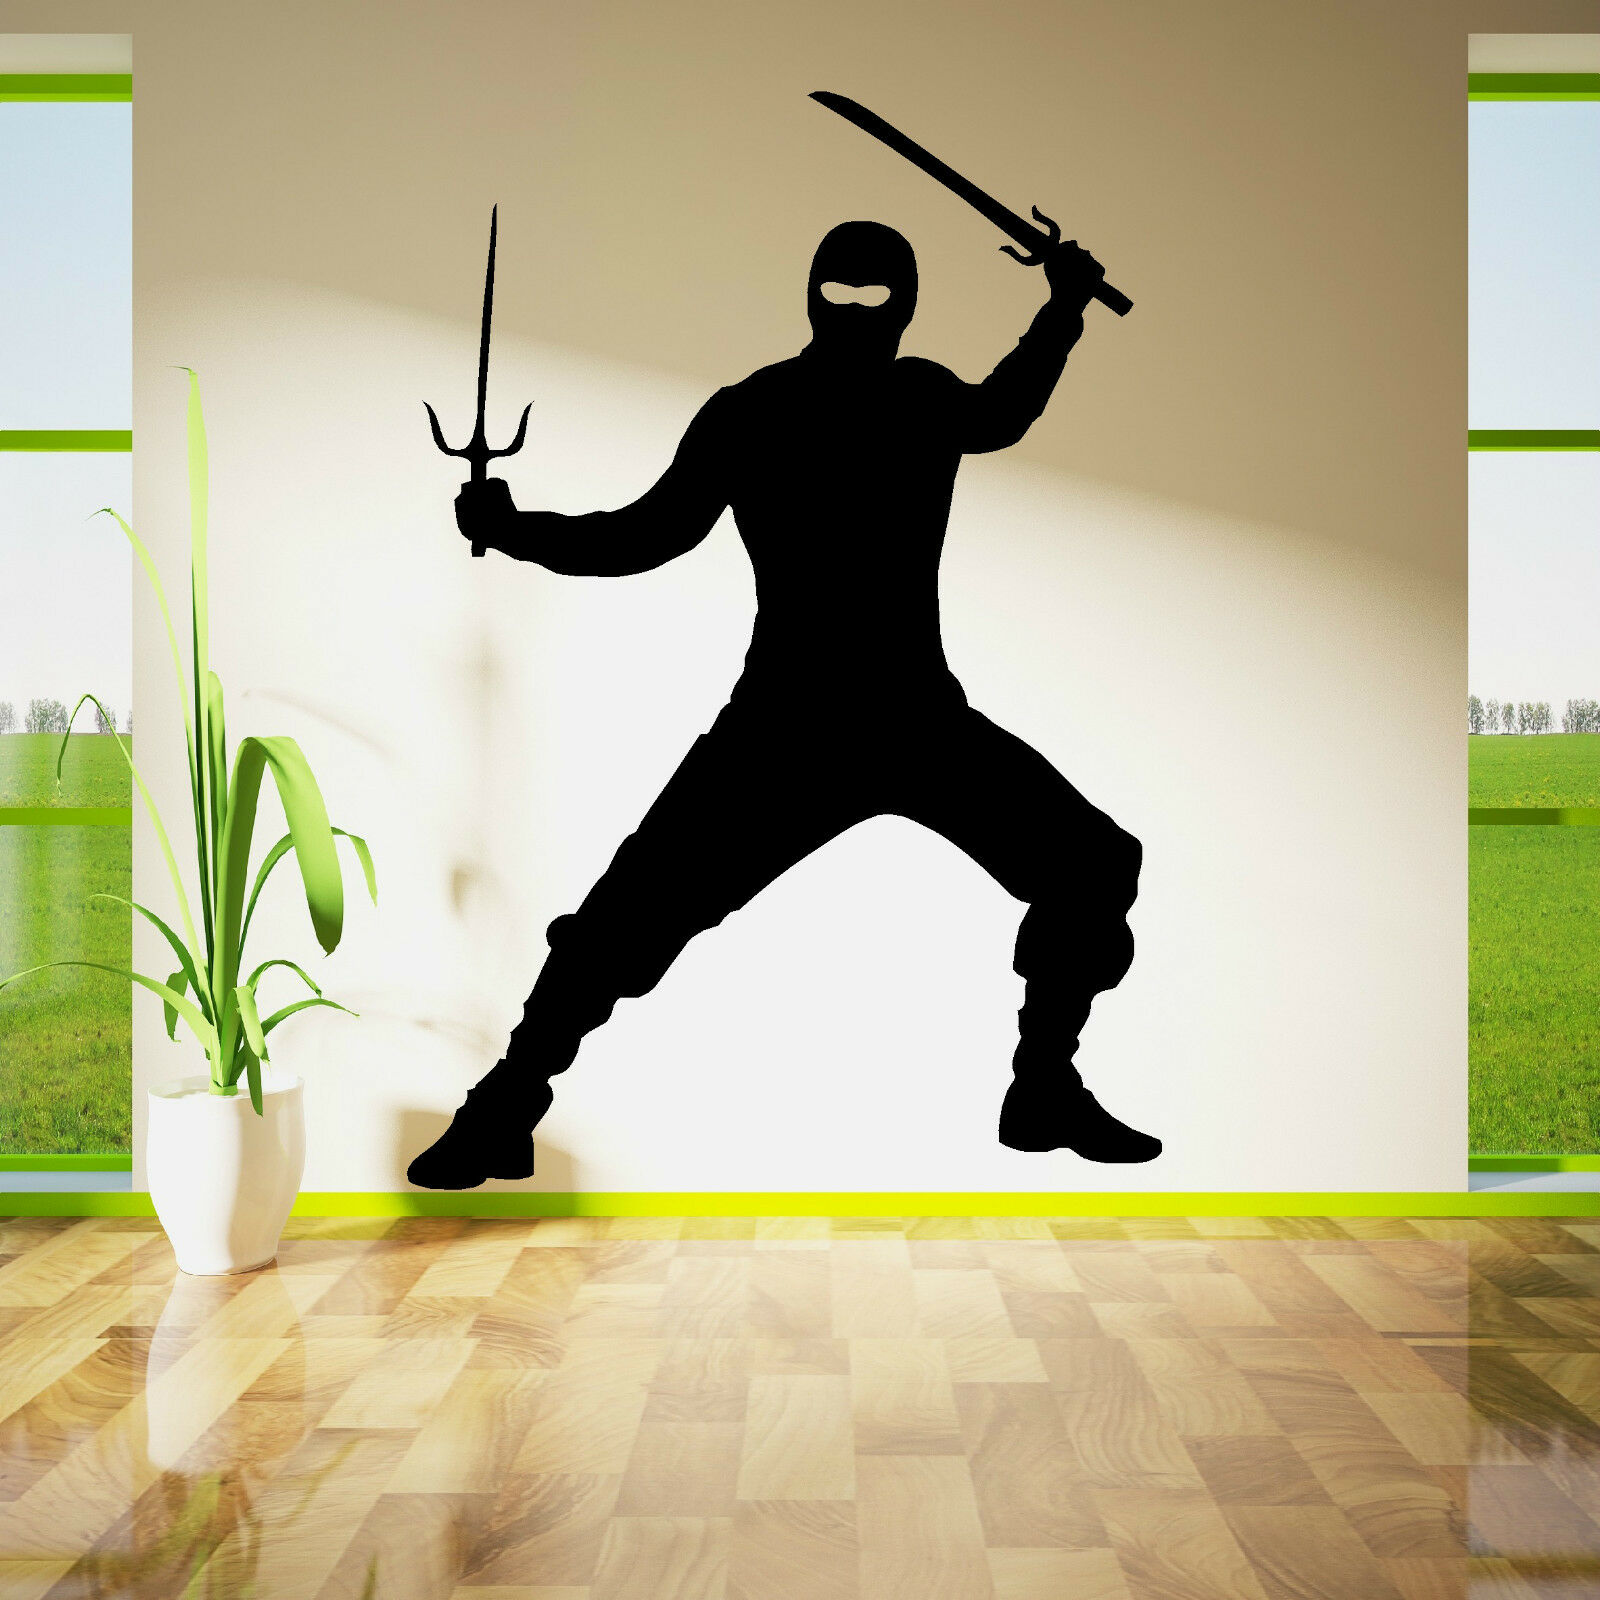 Ninja Fighter With Swords Vinyl Wall Art Decal Sticker Ebay